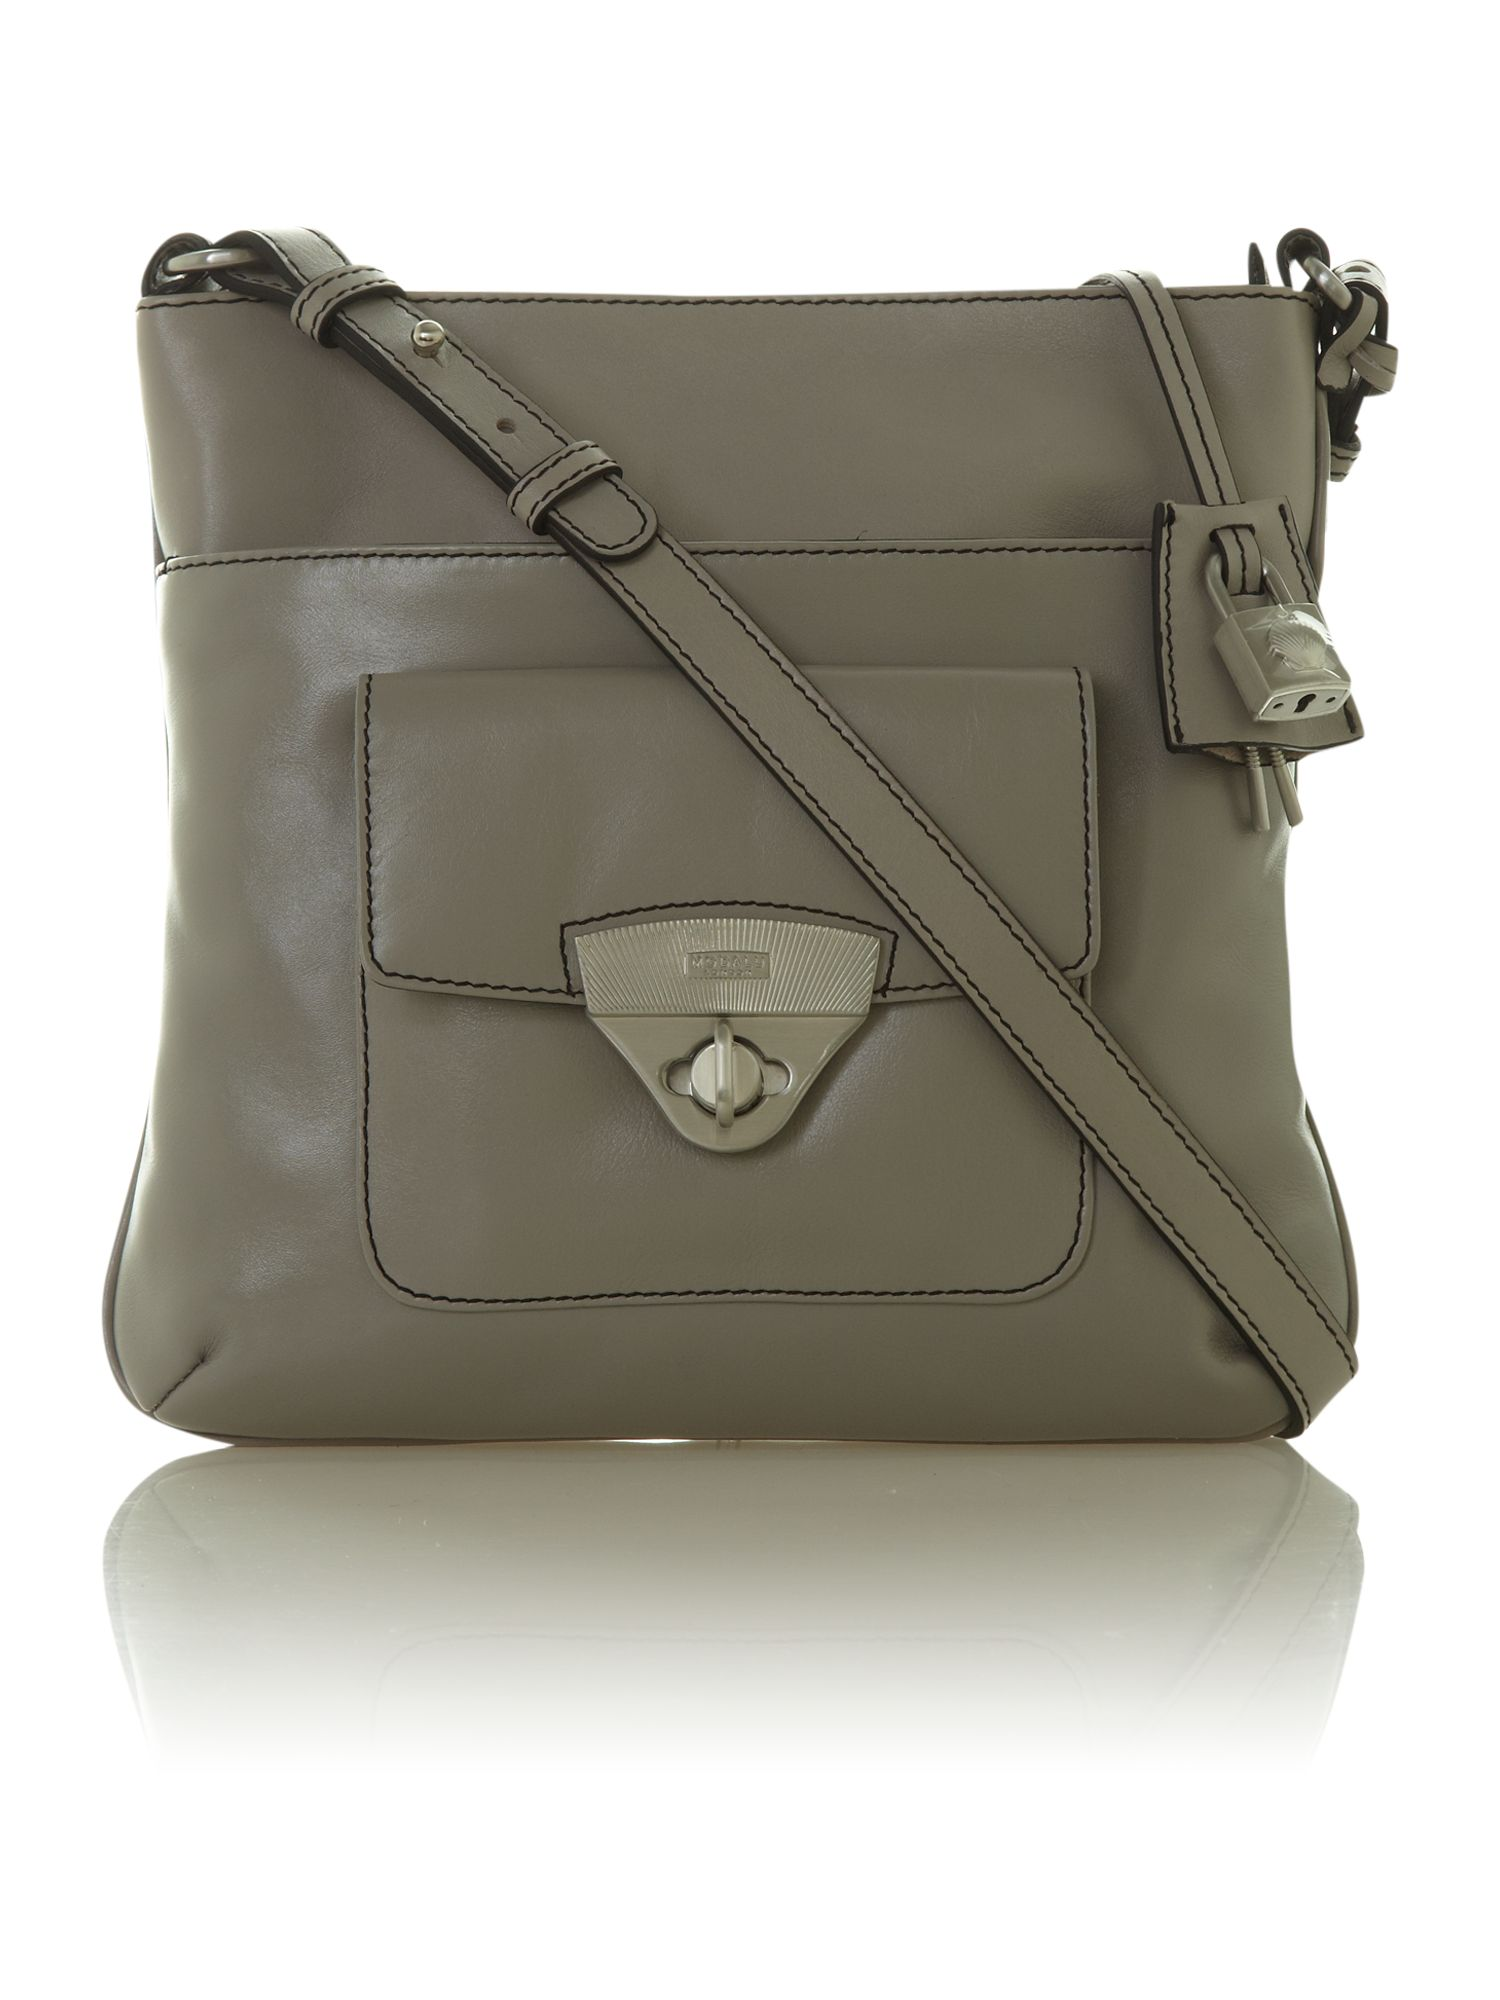 Millie cross body bag